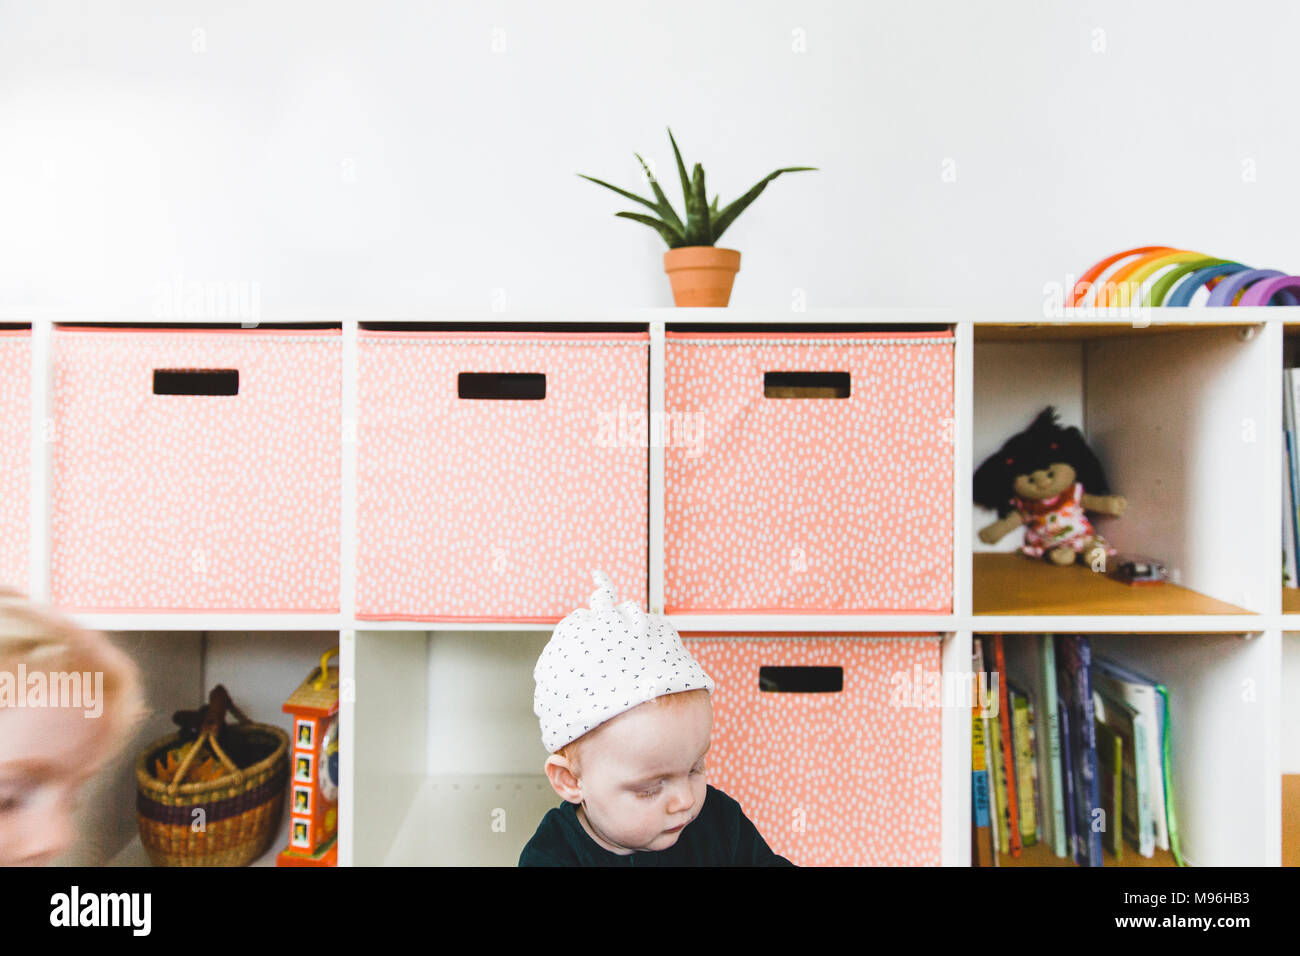 Girl in playroom sitting next to pink drawers - Stock Image